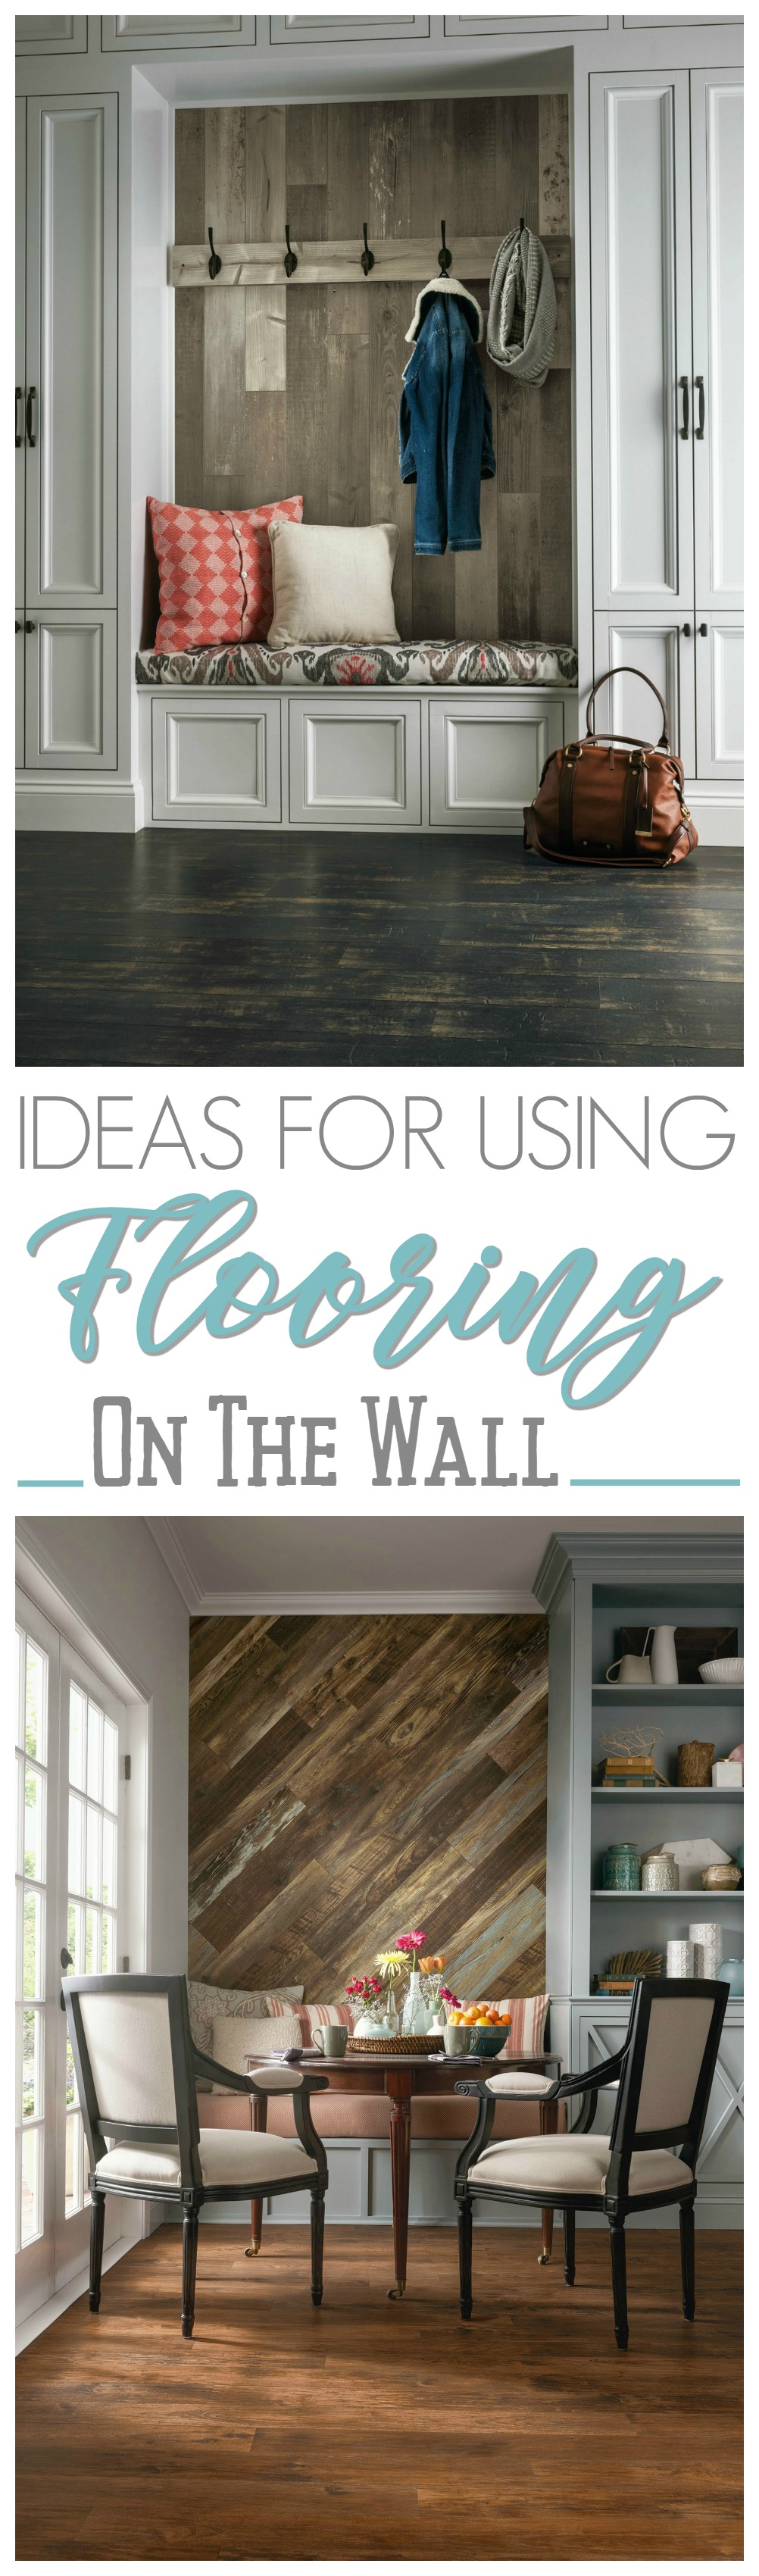 Wood Feature Wall Ideas wood feature accent wall ideas using flooring - fox hollow cottage